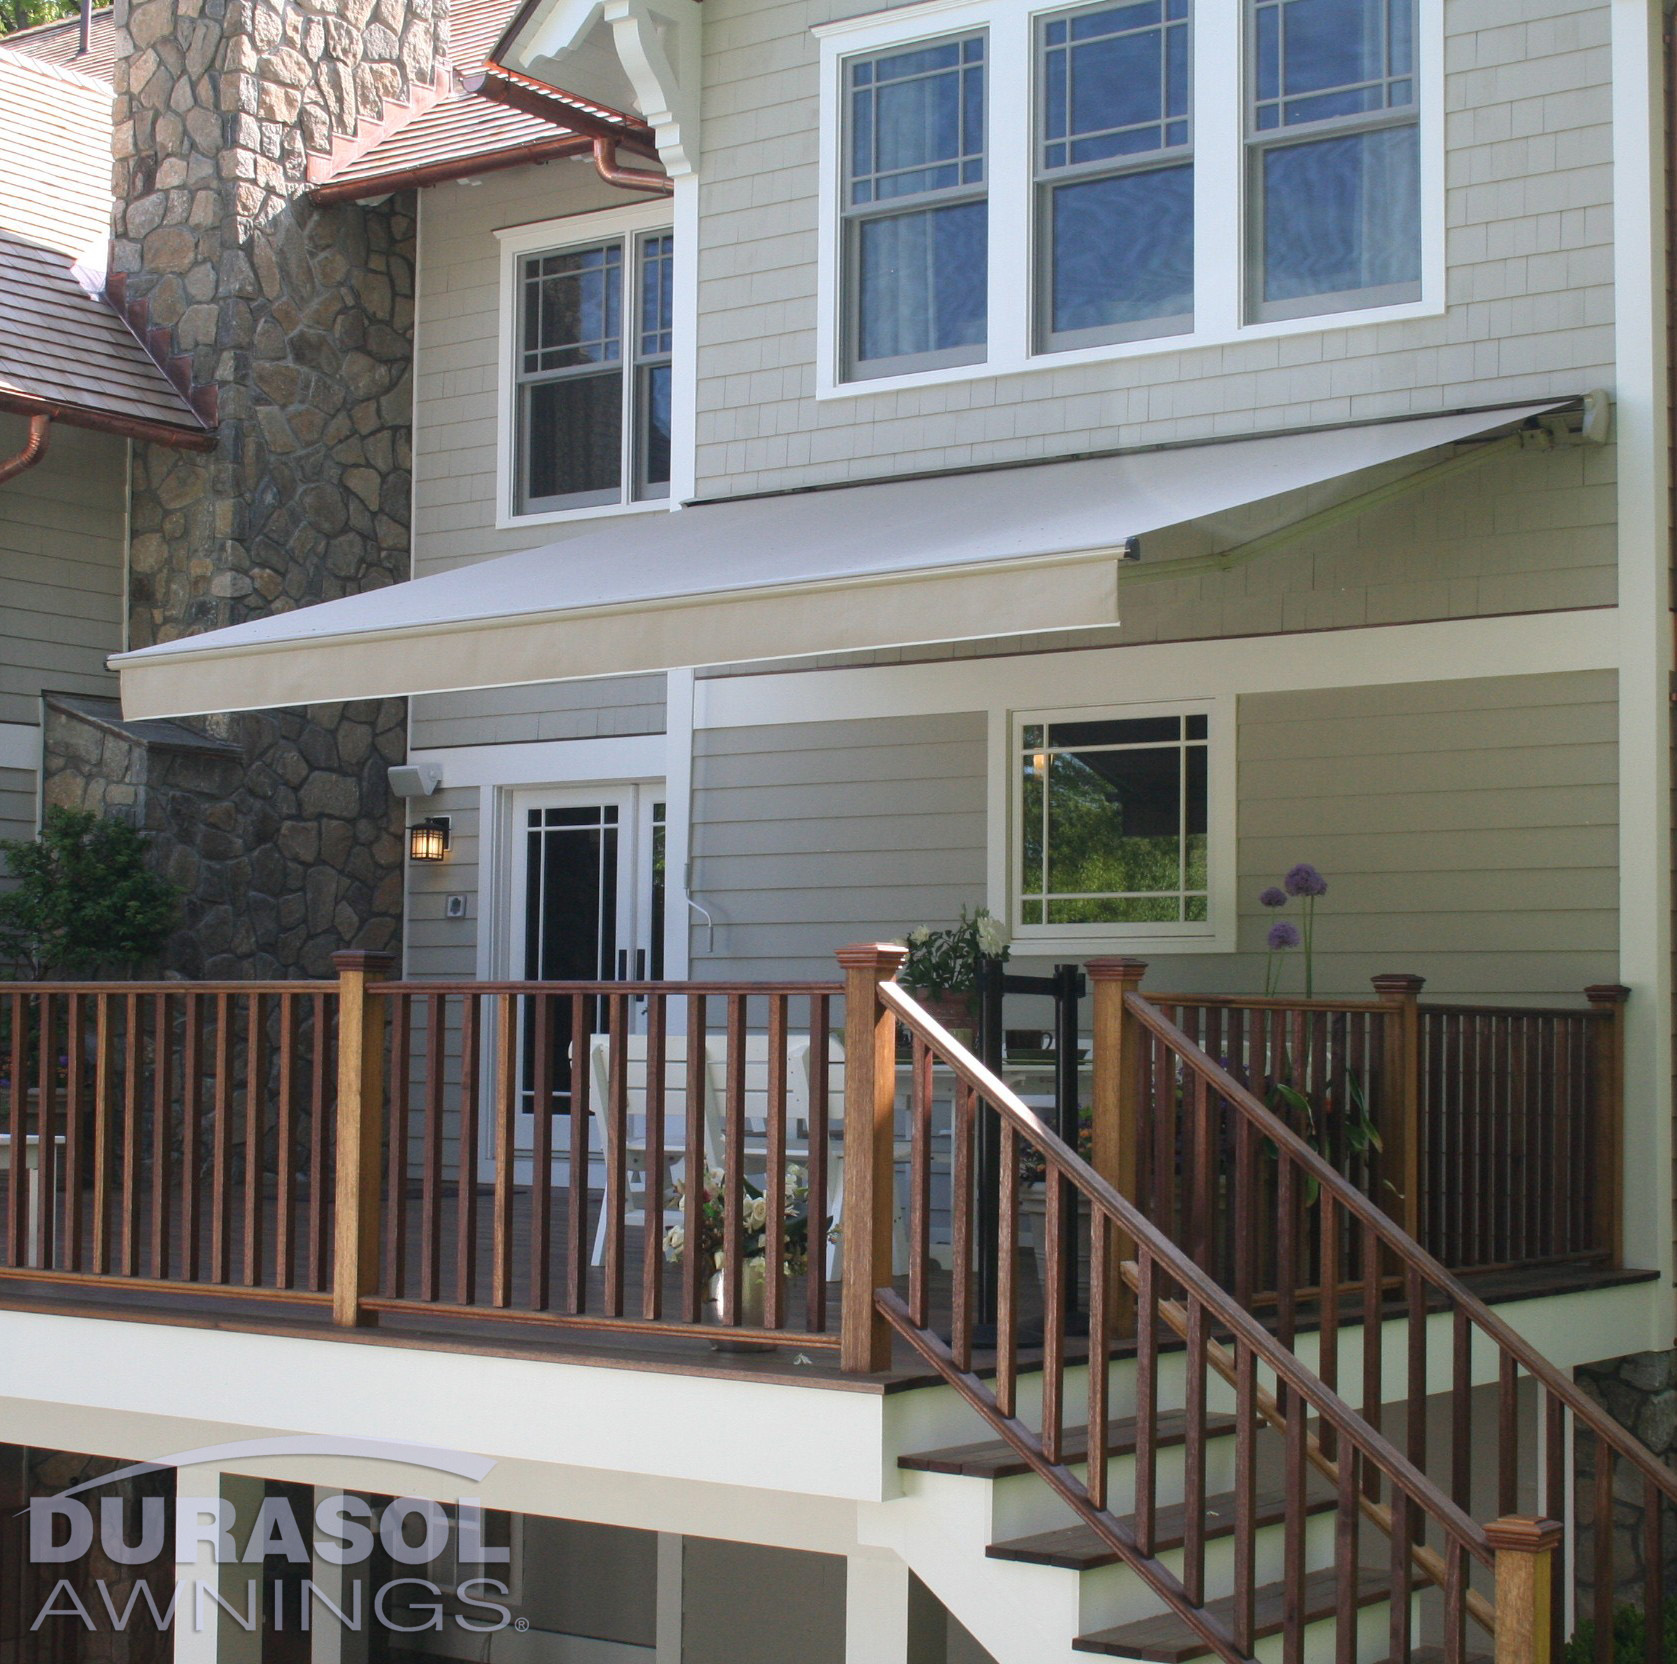 Retractable Awnings, Outdoor Living Spaces Eau Claire, WI ...